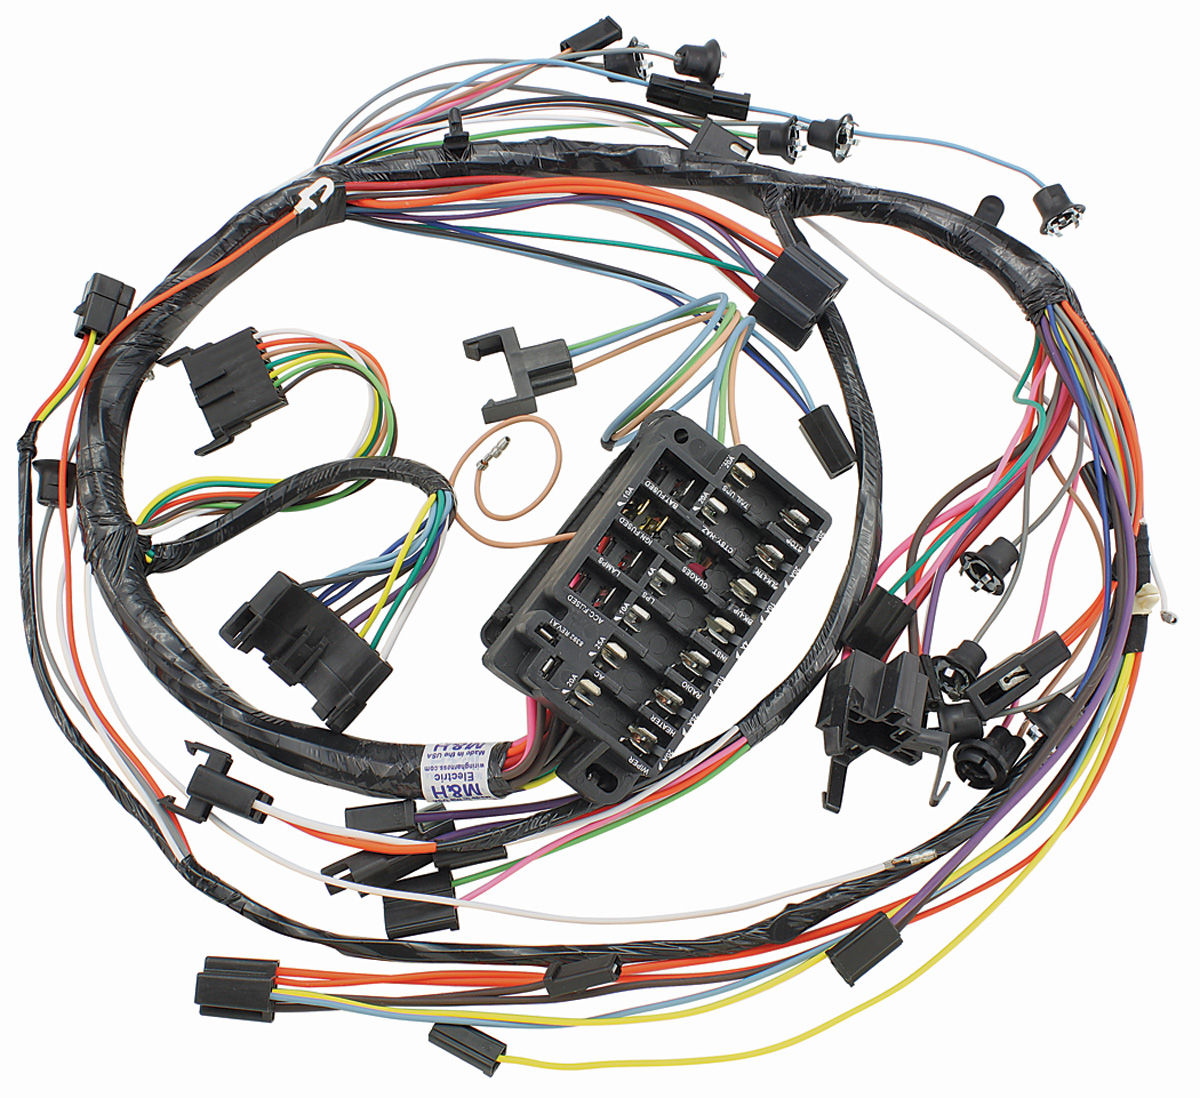 hight resolution of 1967 chevelle dash wiring harness